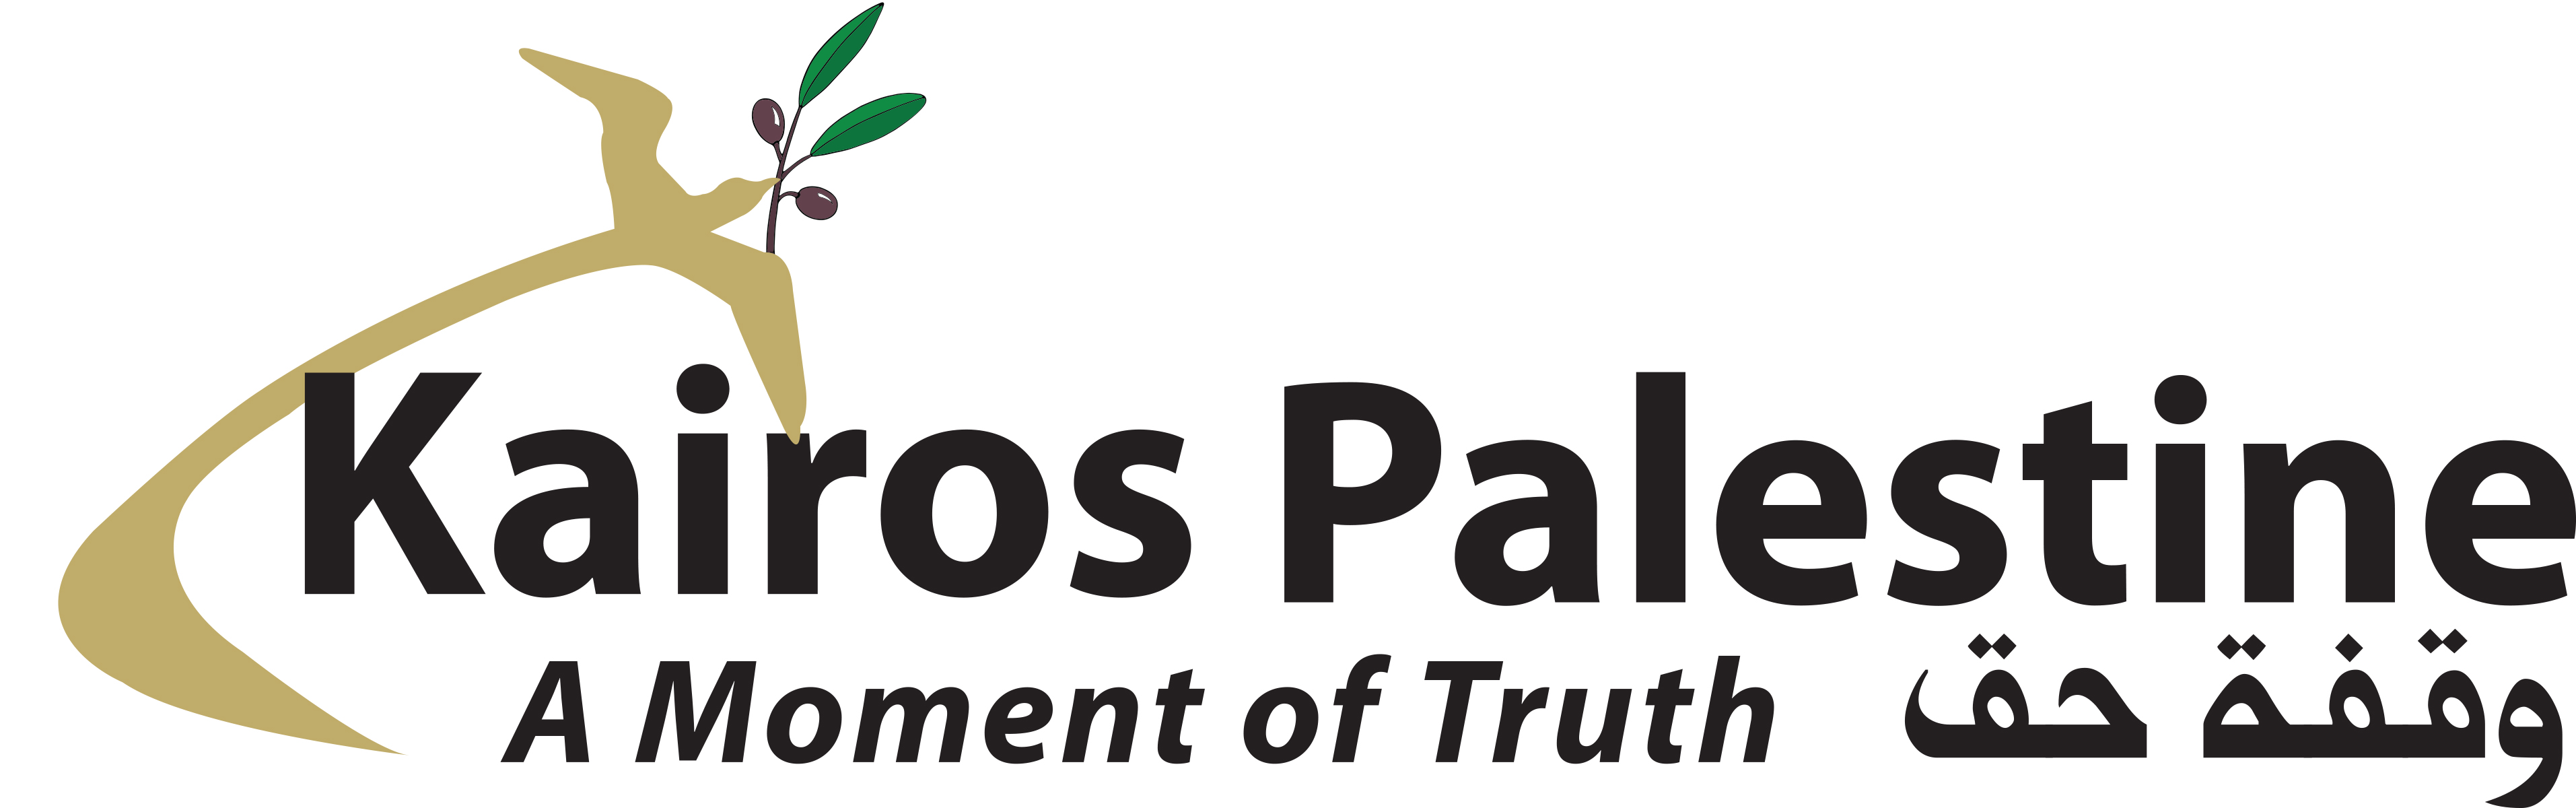 Kairos Palestine logo from GM website 2020